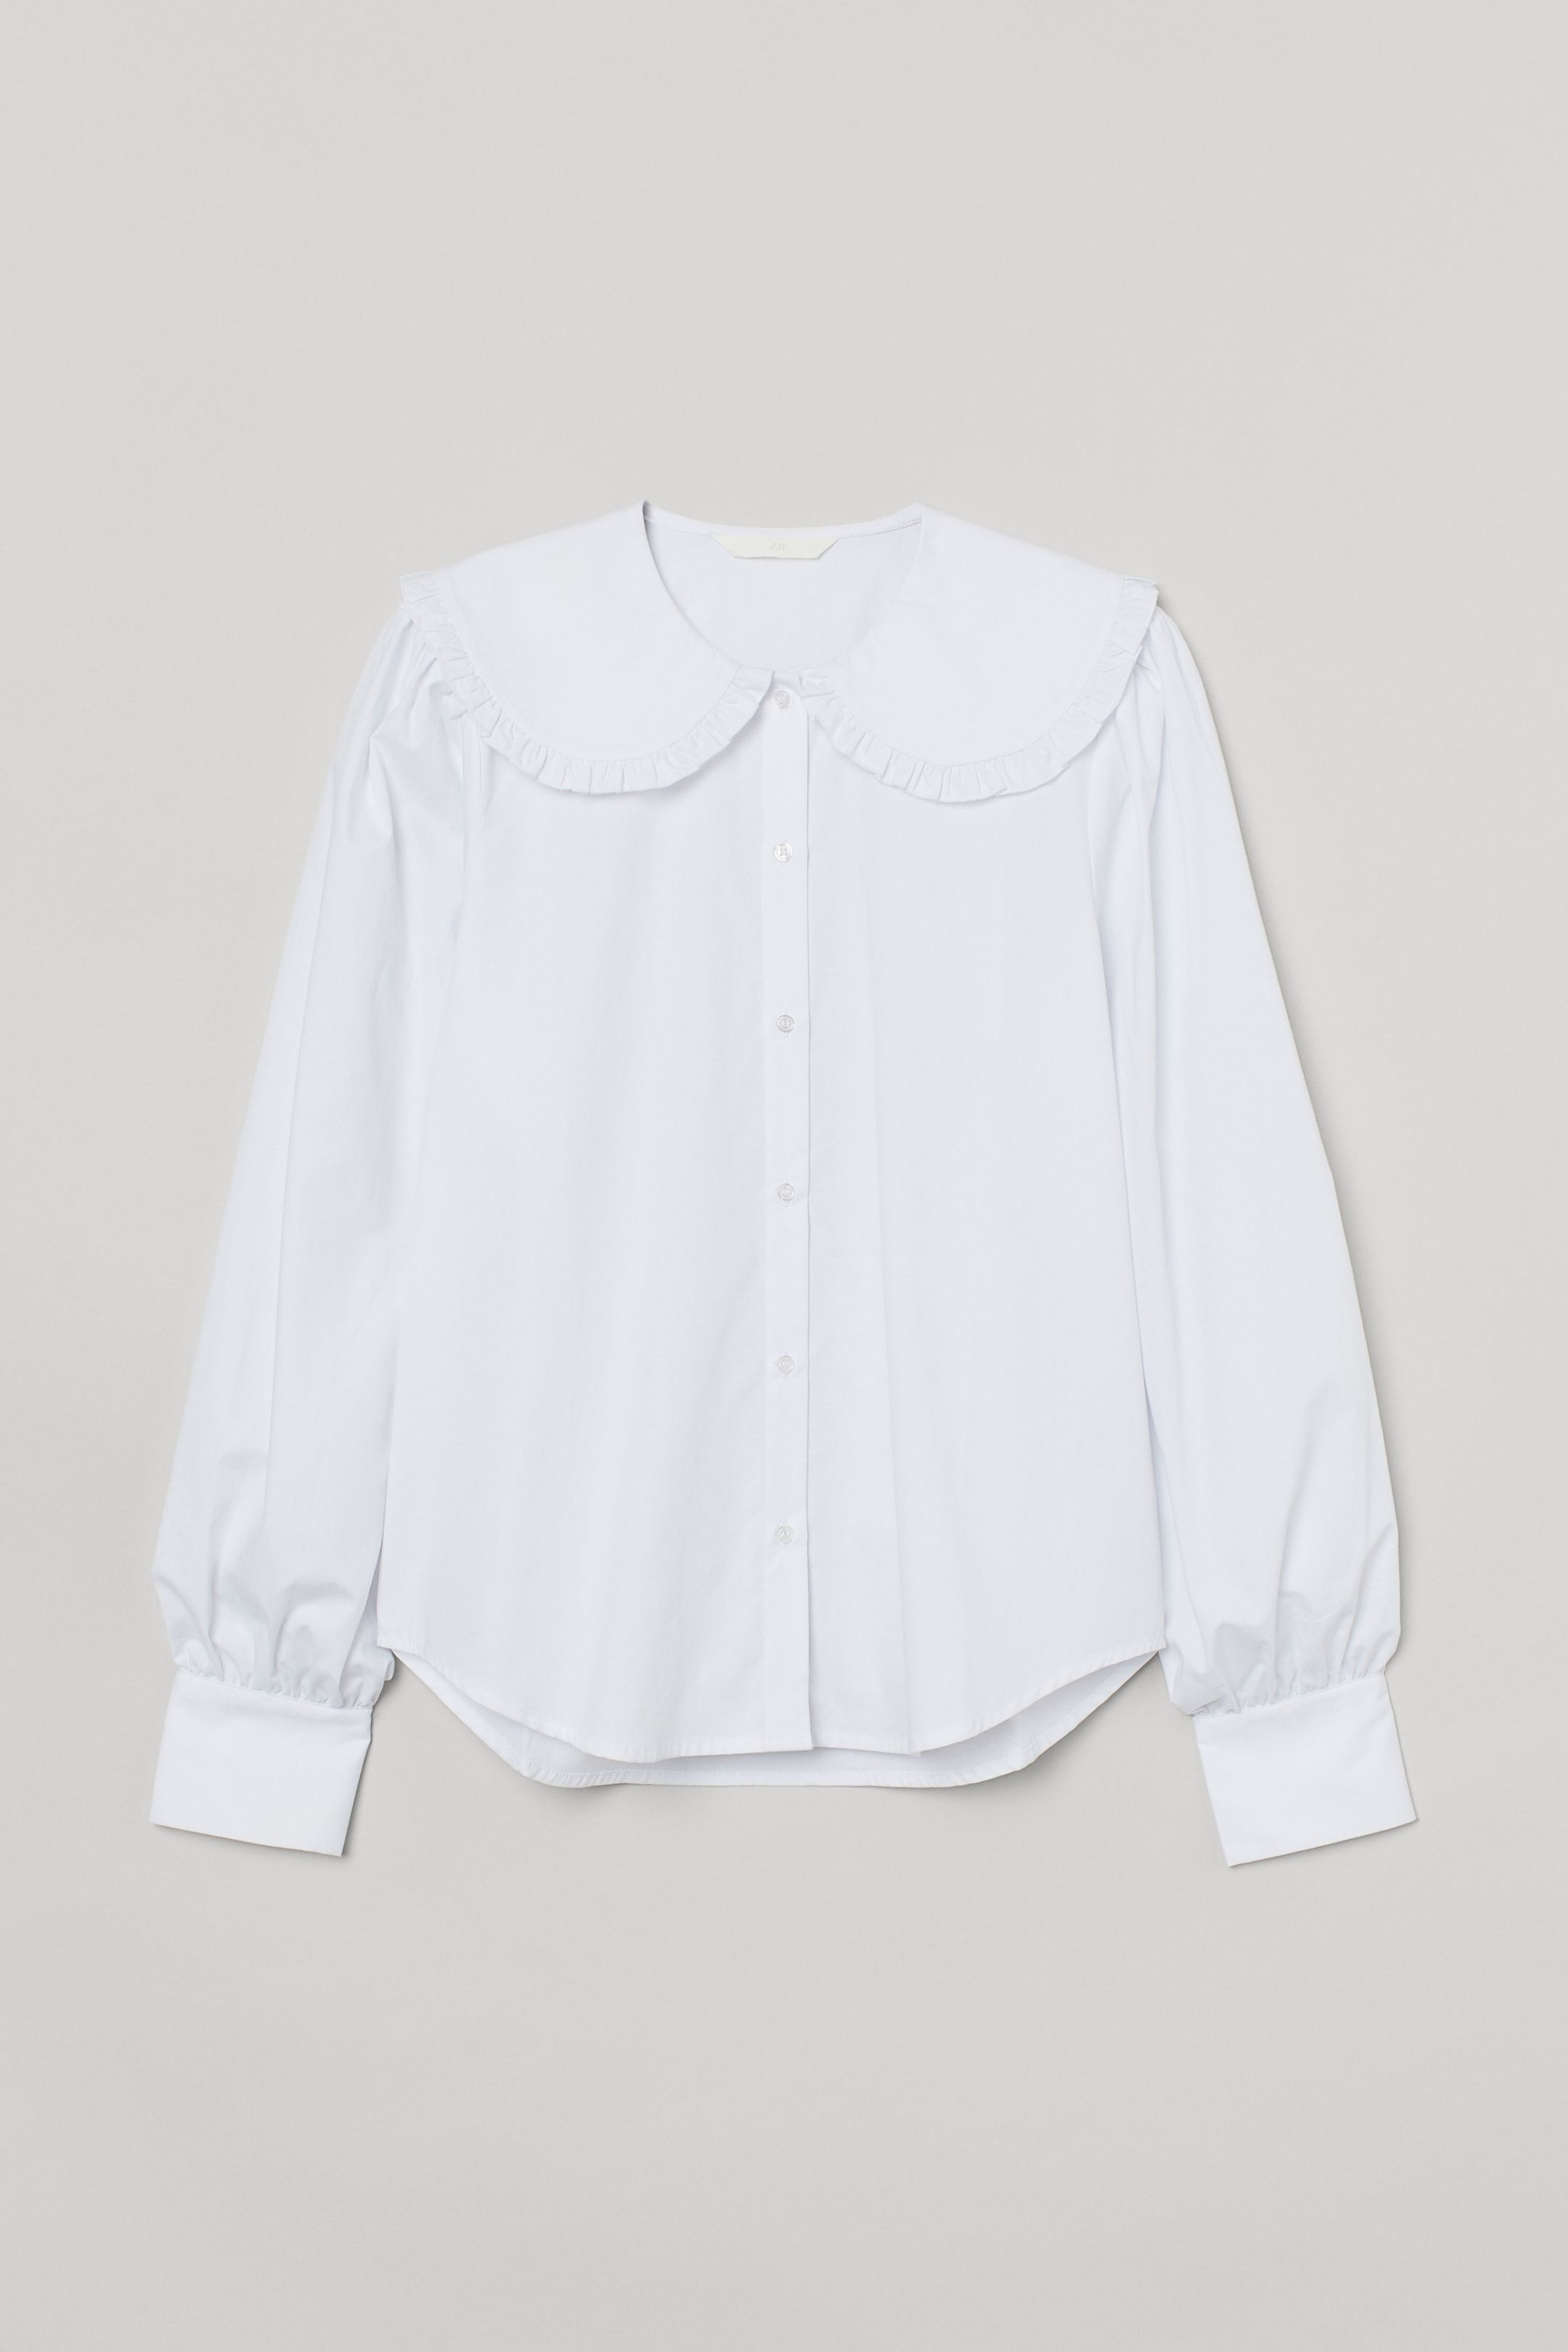 Vaporous cotton blouse with wide double collar with ruffle and button closure. Straight cut model with long sleeves, wide buttoned cuffs and rounded bottom with slightly longer back.